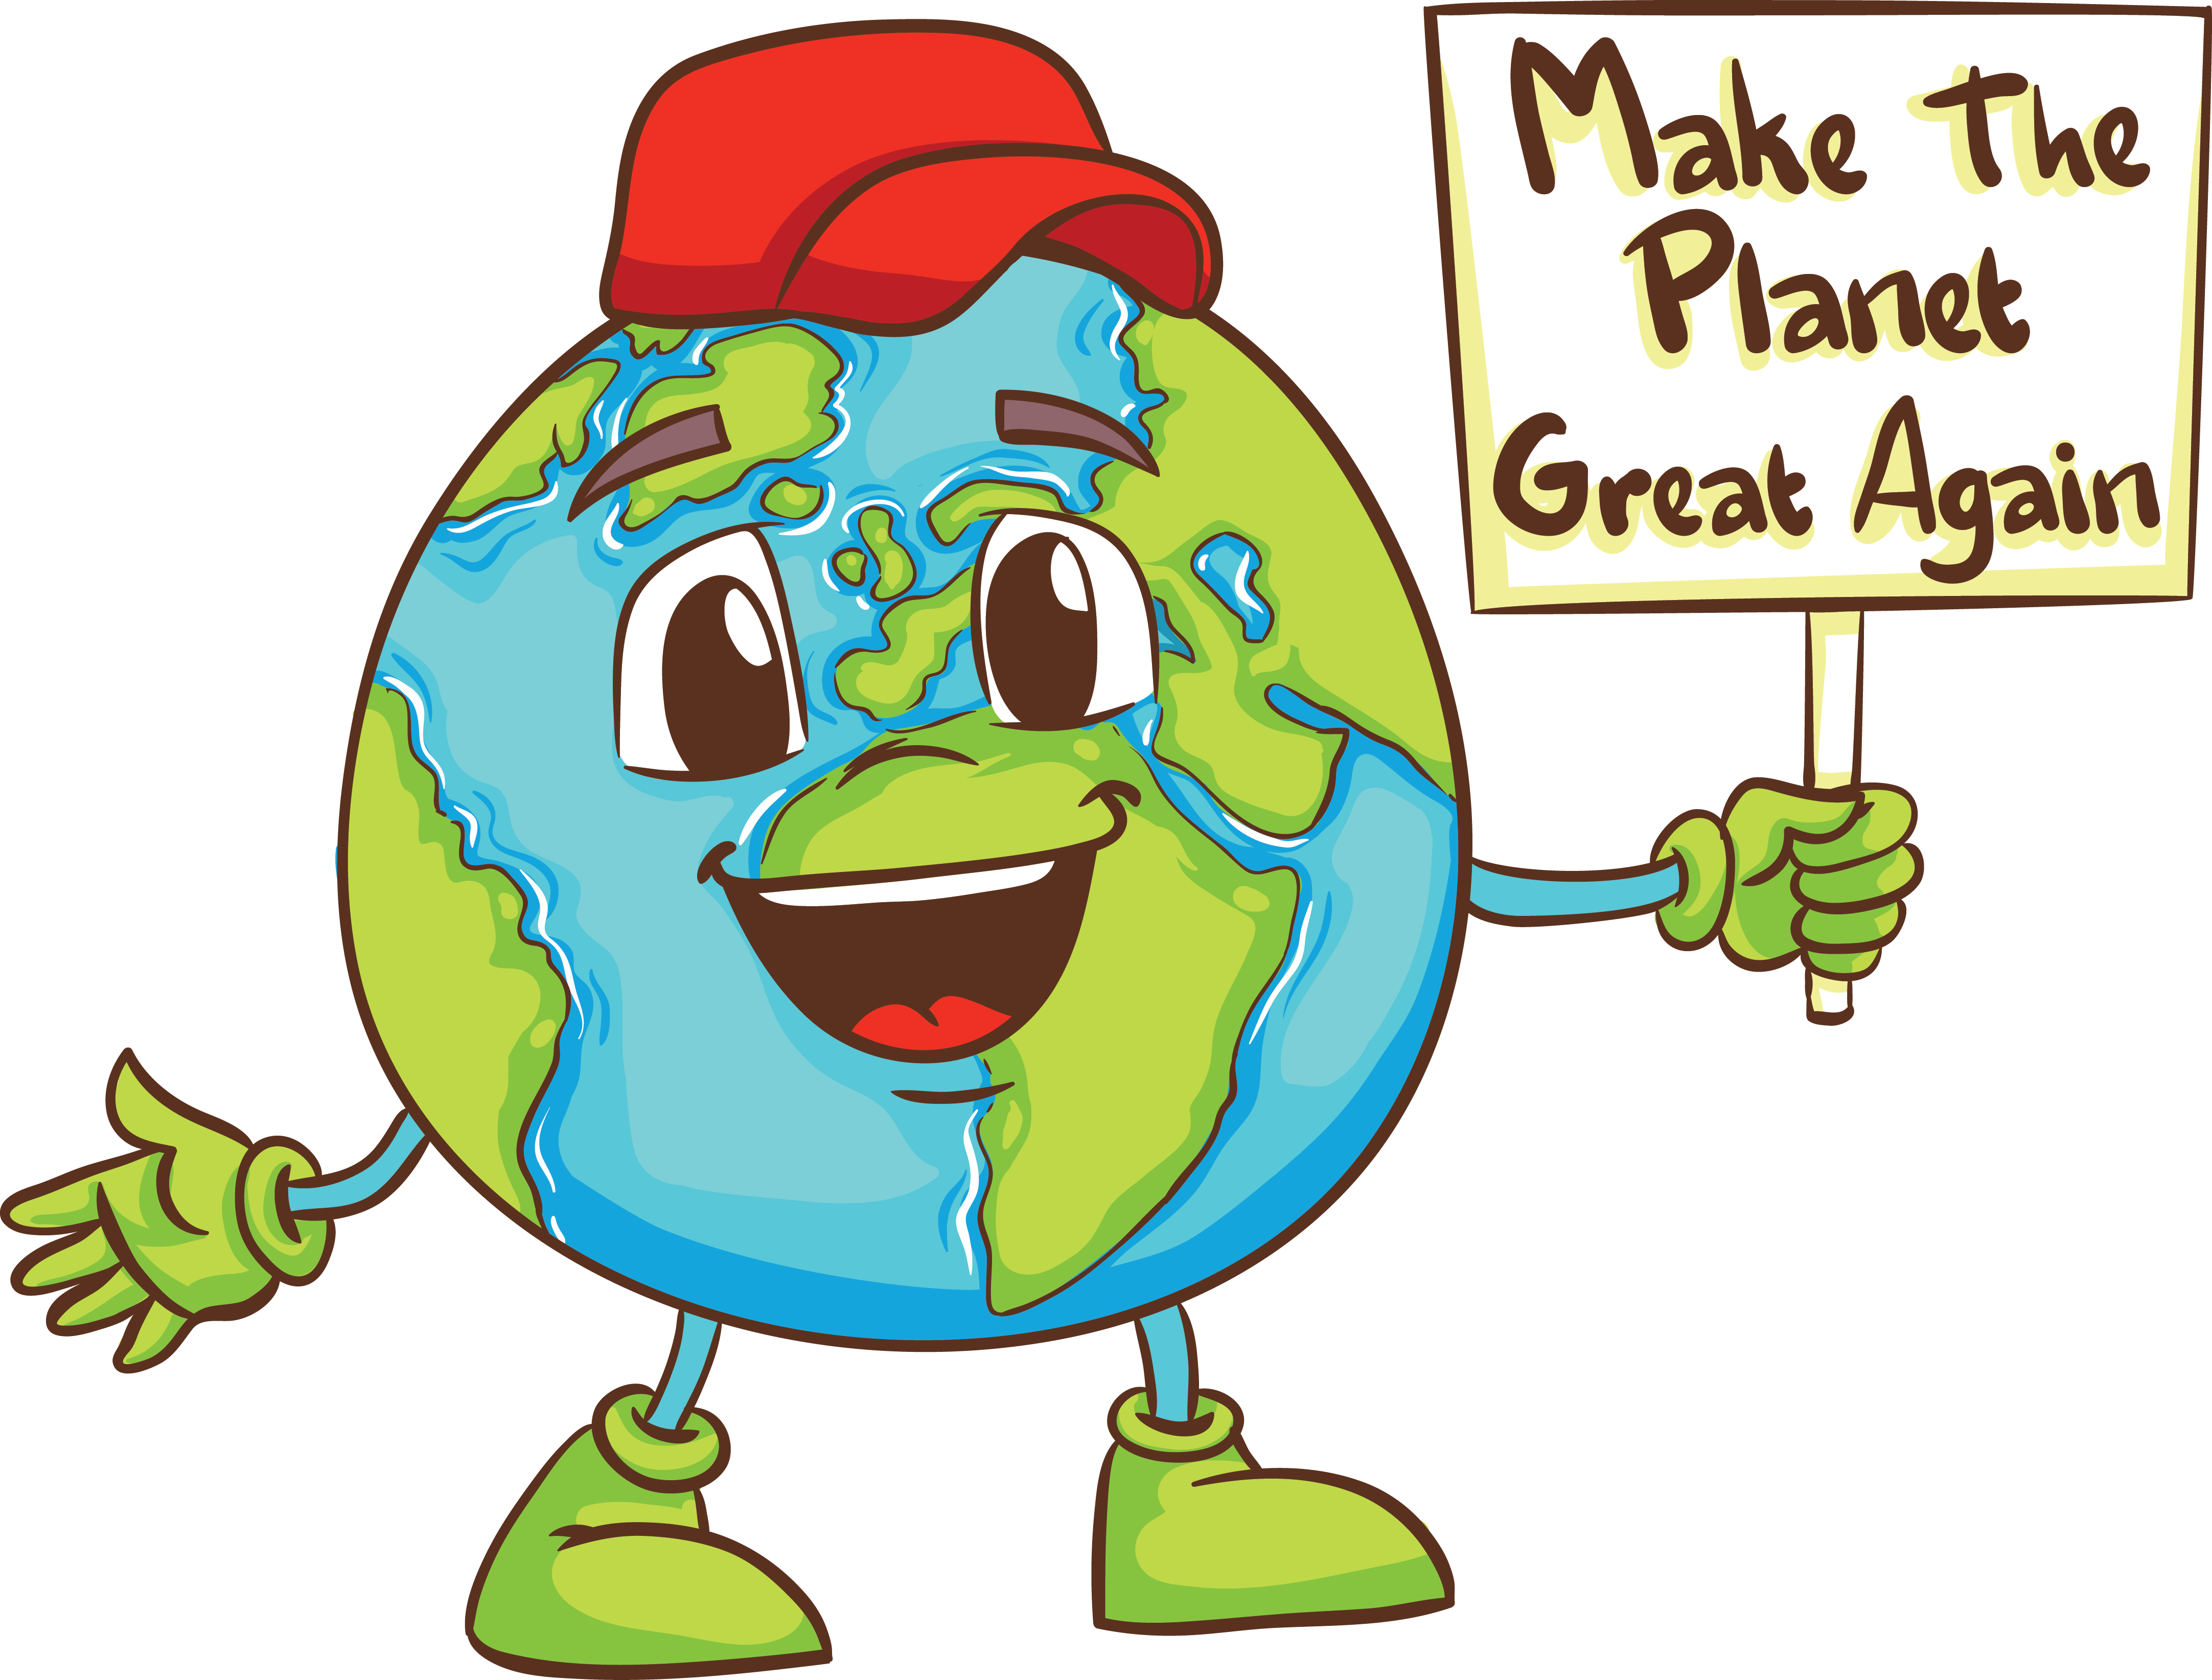 Make the Planet Great Again (with hat)